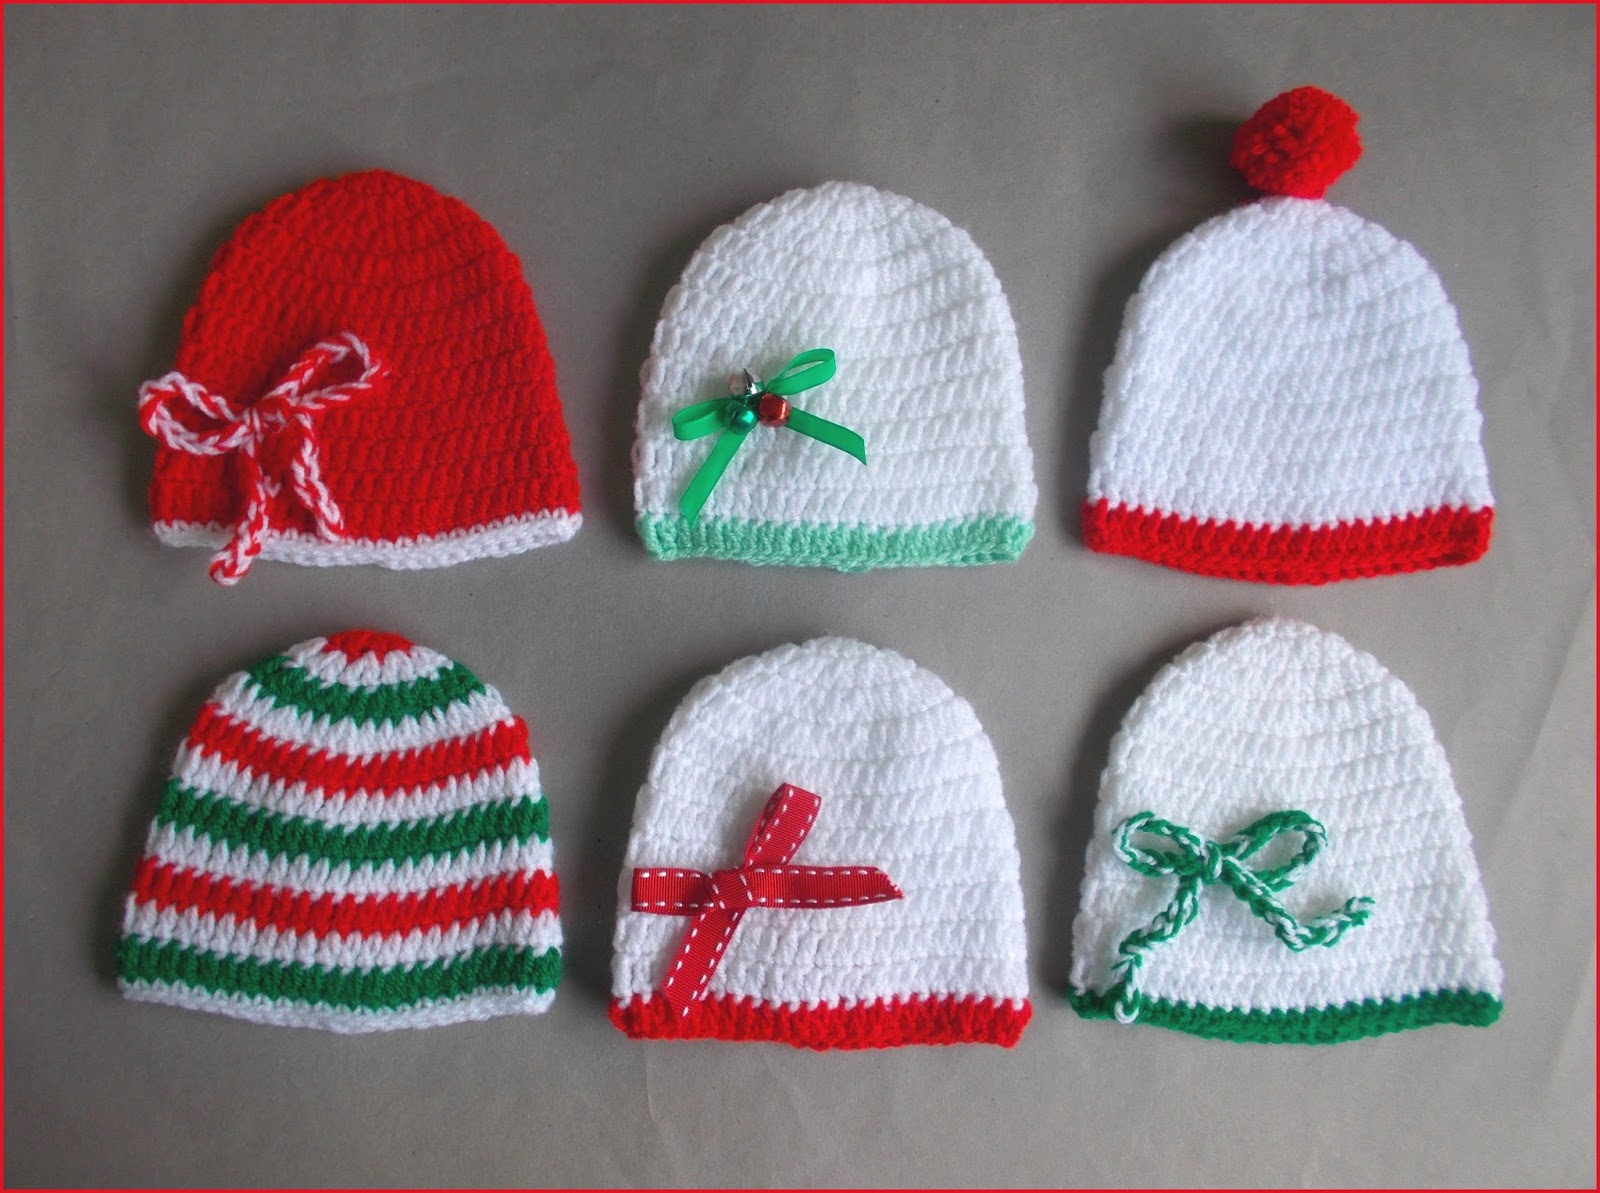 marianna's lazy daisy days: Crochet Christmas Baby Hats